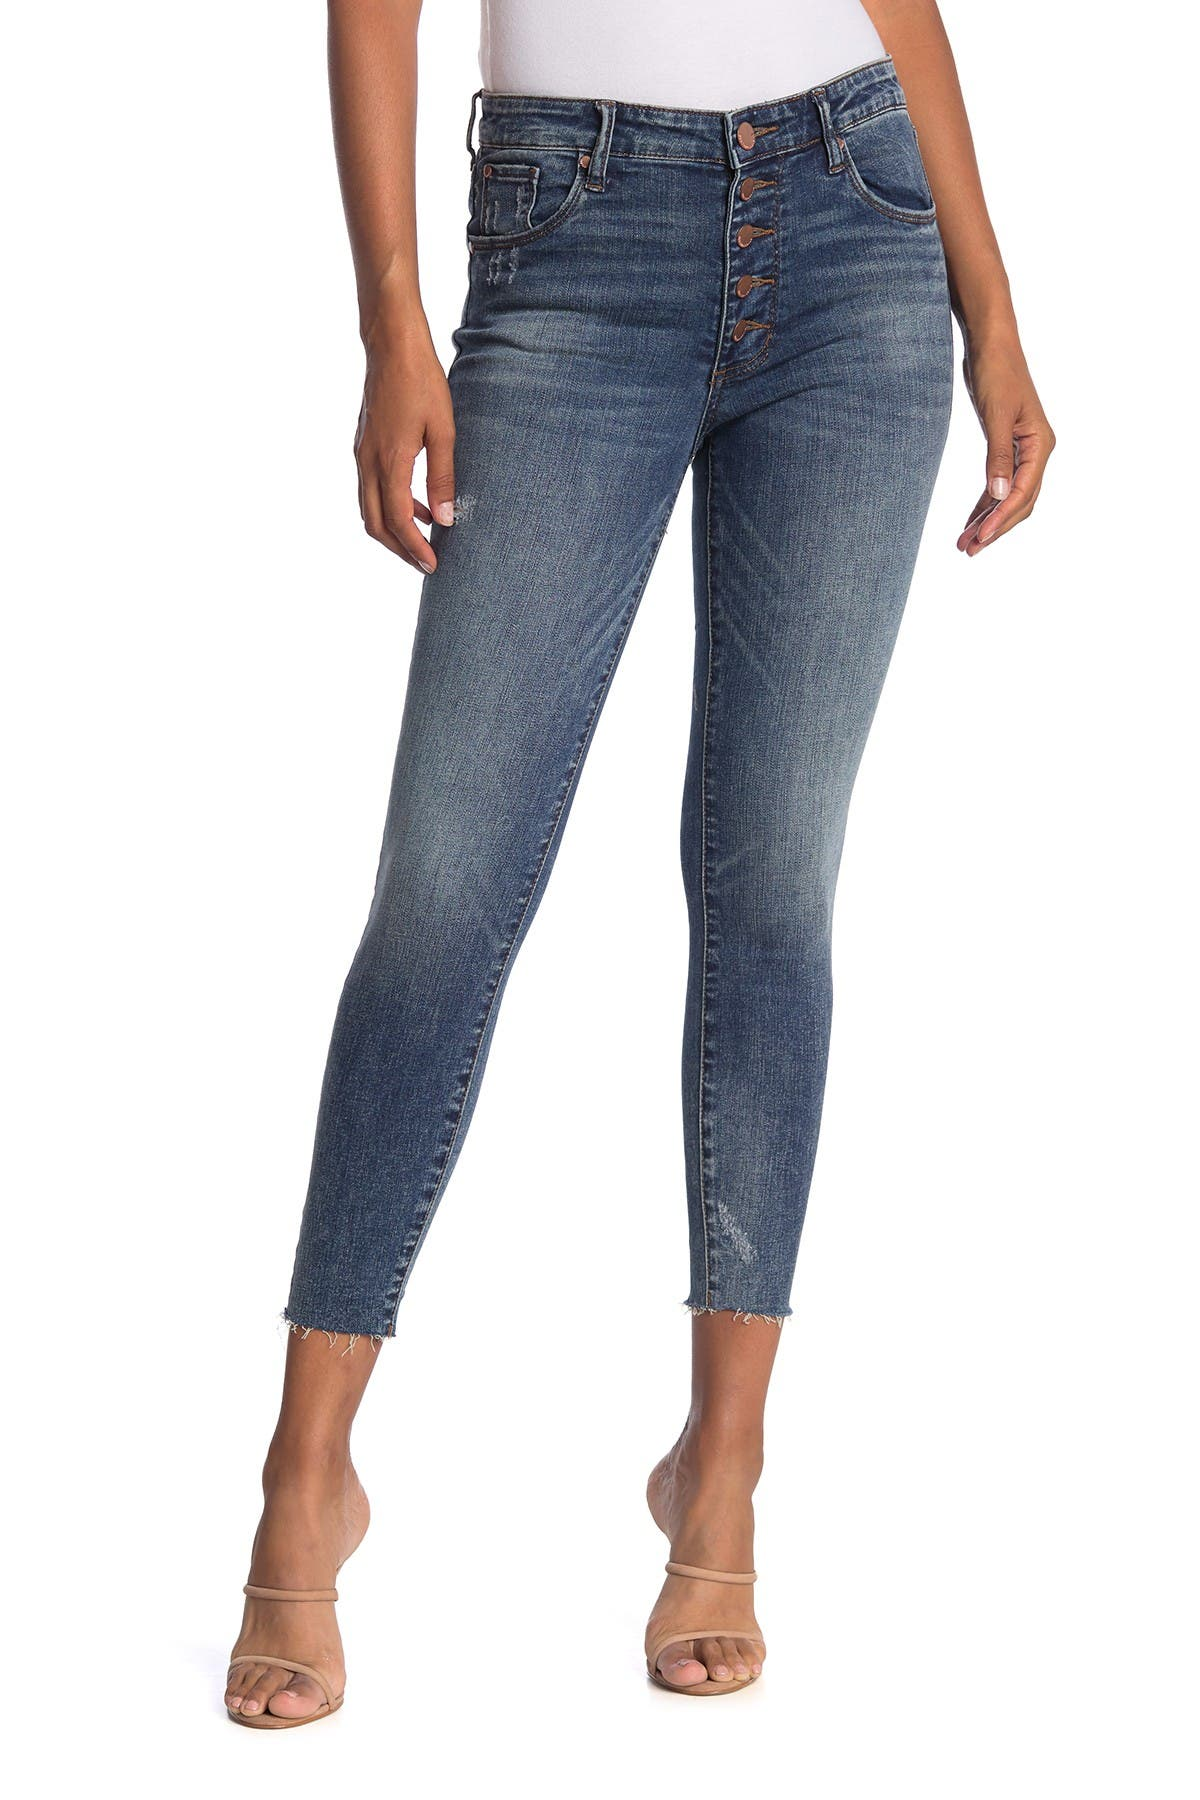 Image of STS BLUE Ellie High Rise Button Fly Jeans